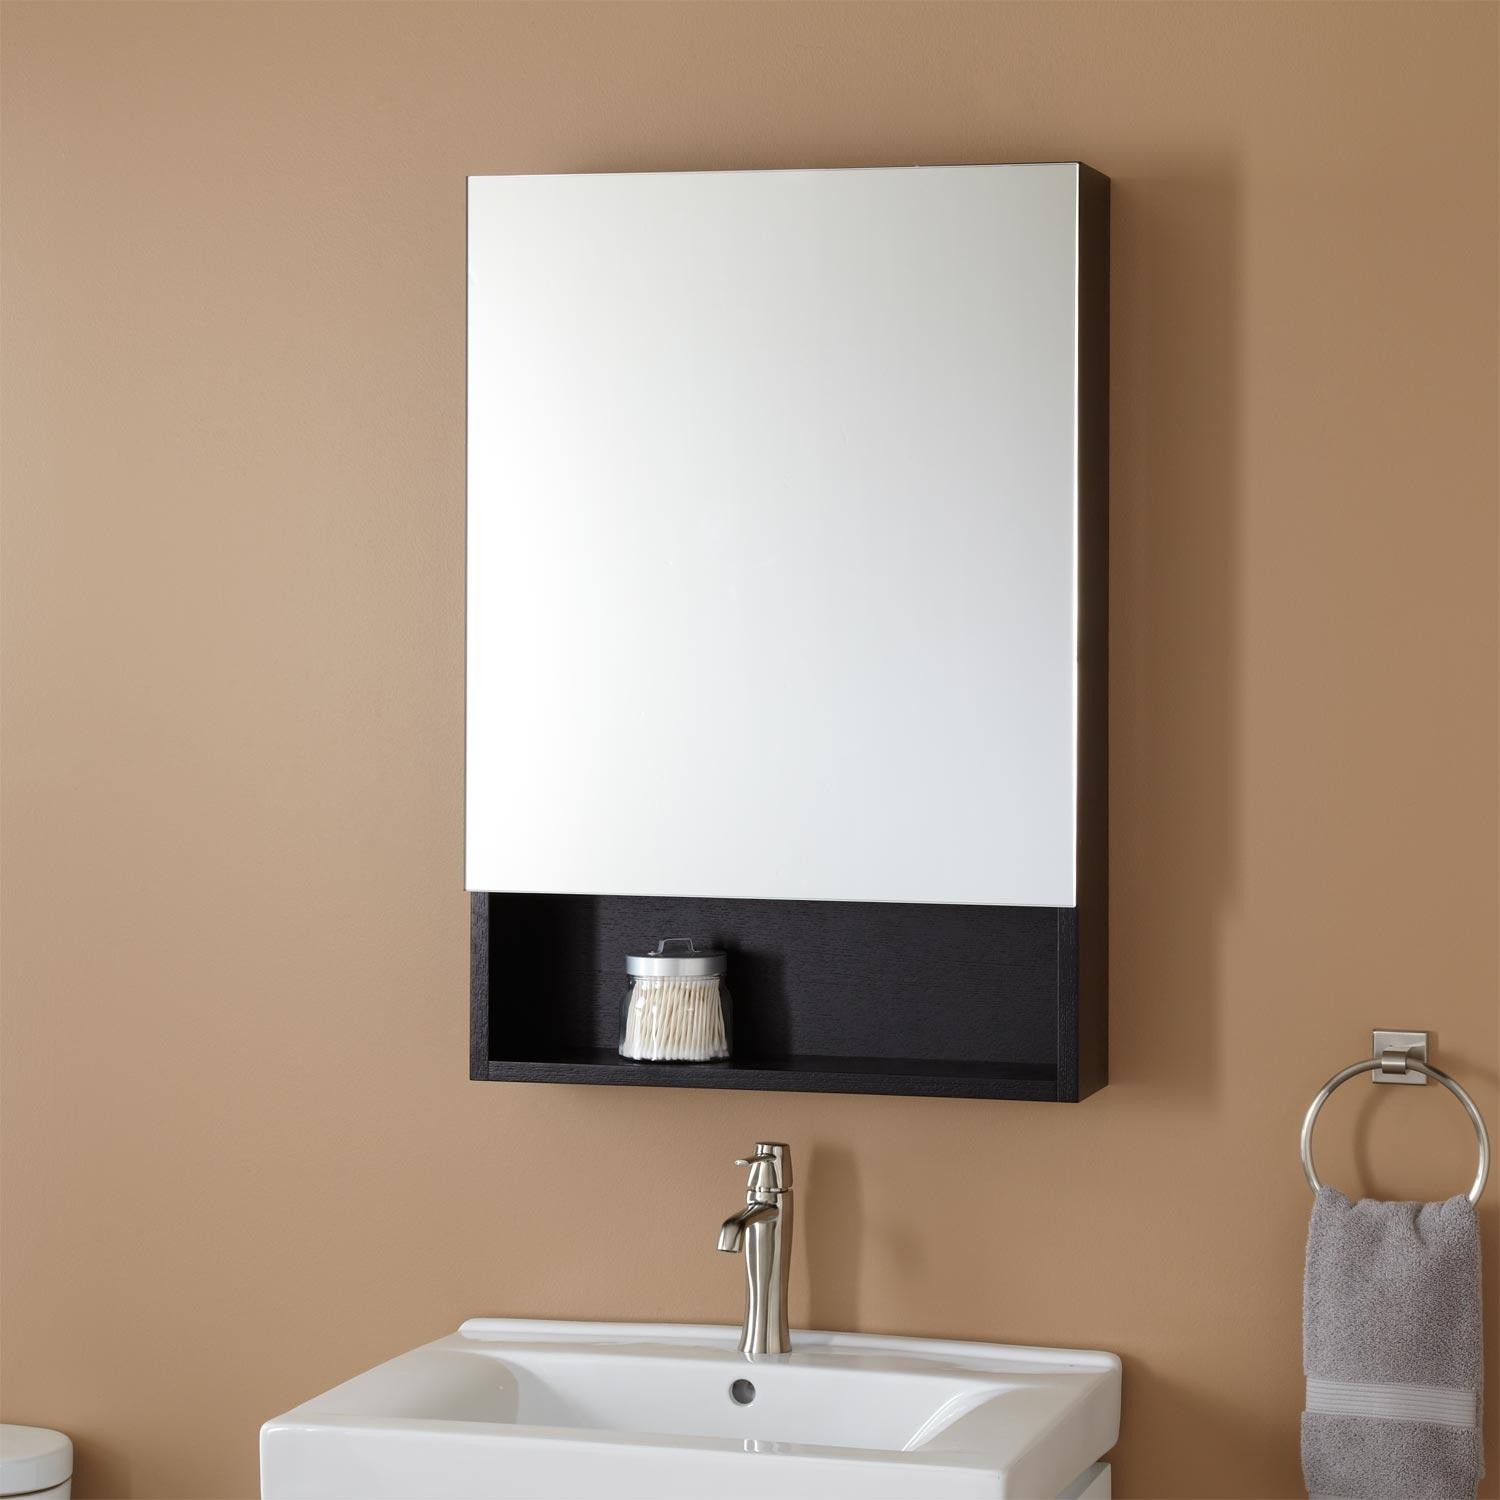 Black Lowes Medicine Cabinets with mirror on tan wall plus white sink and silver faucet